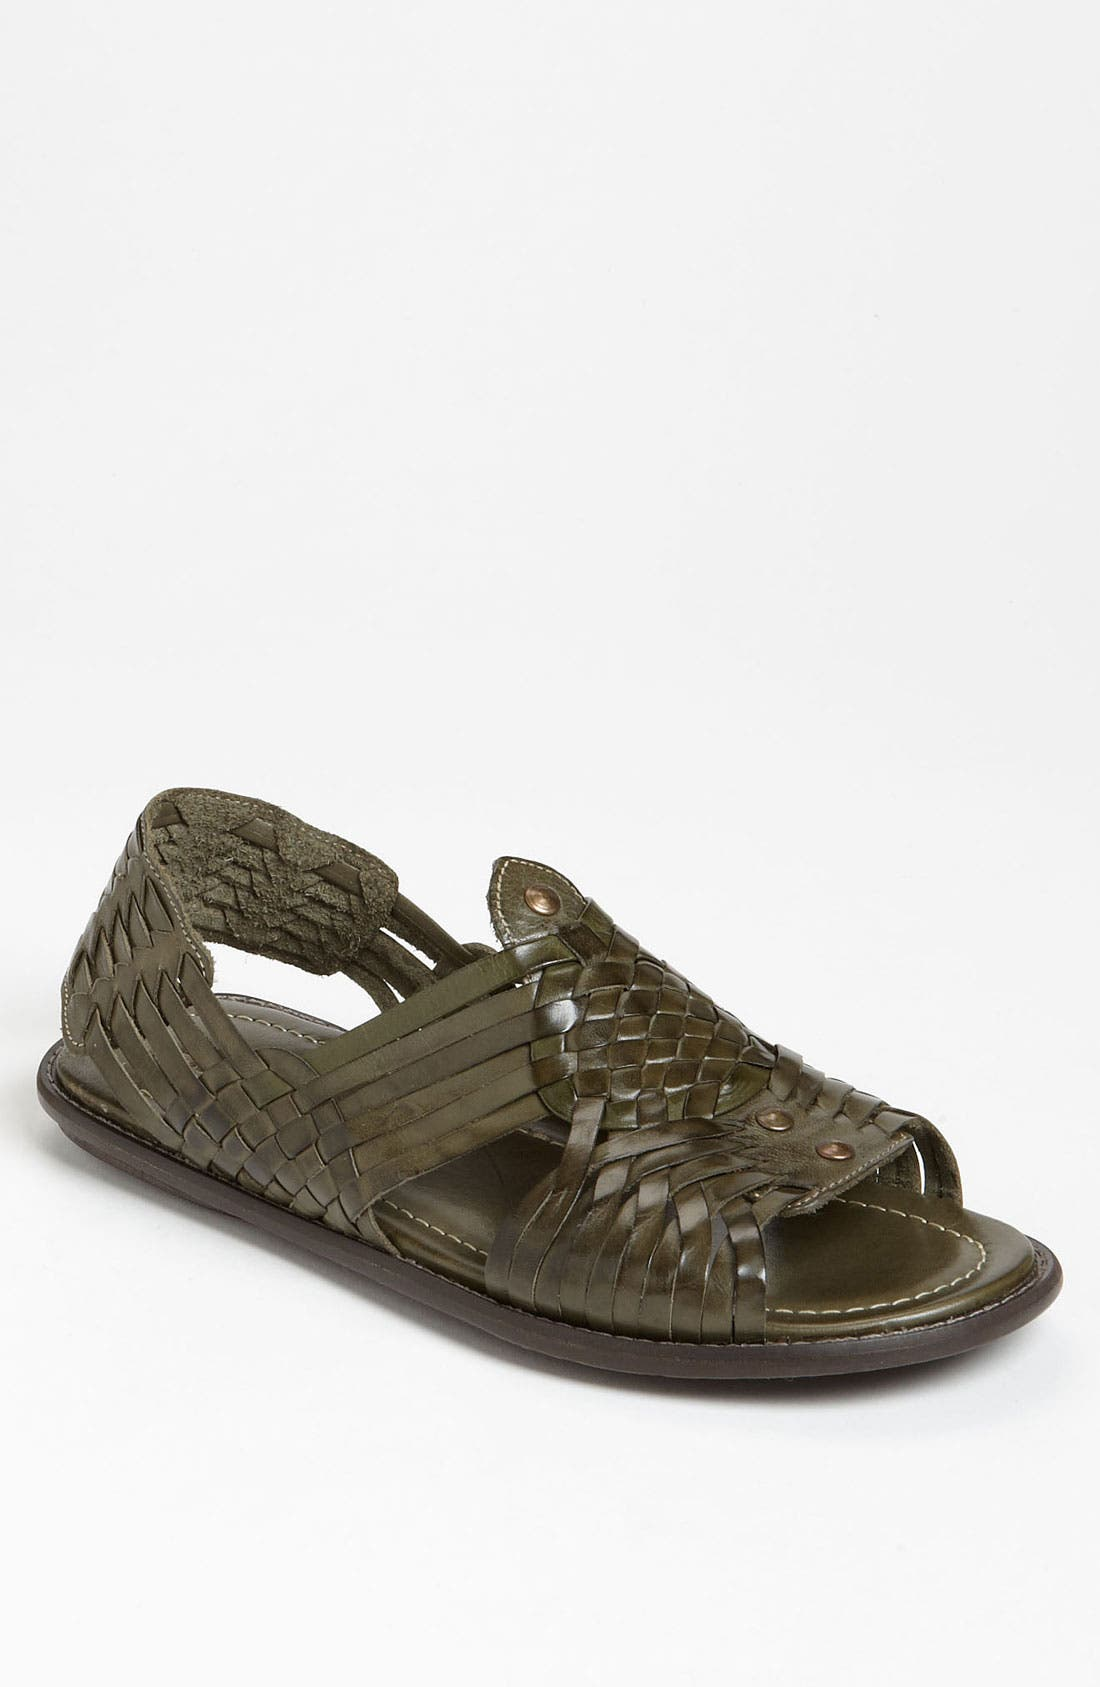 Main Image - Bed Stu 'Conde' Huarache Sandal (Online Only)